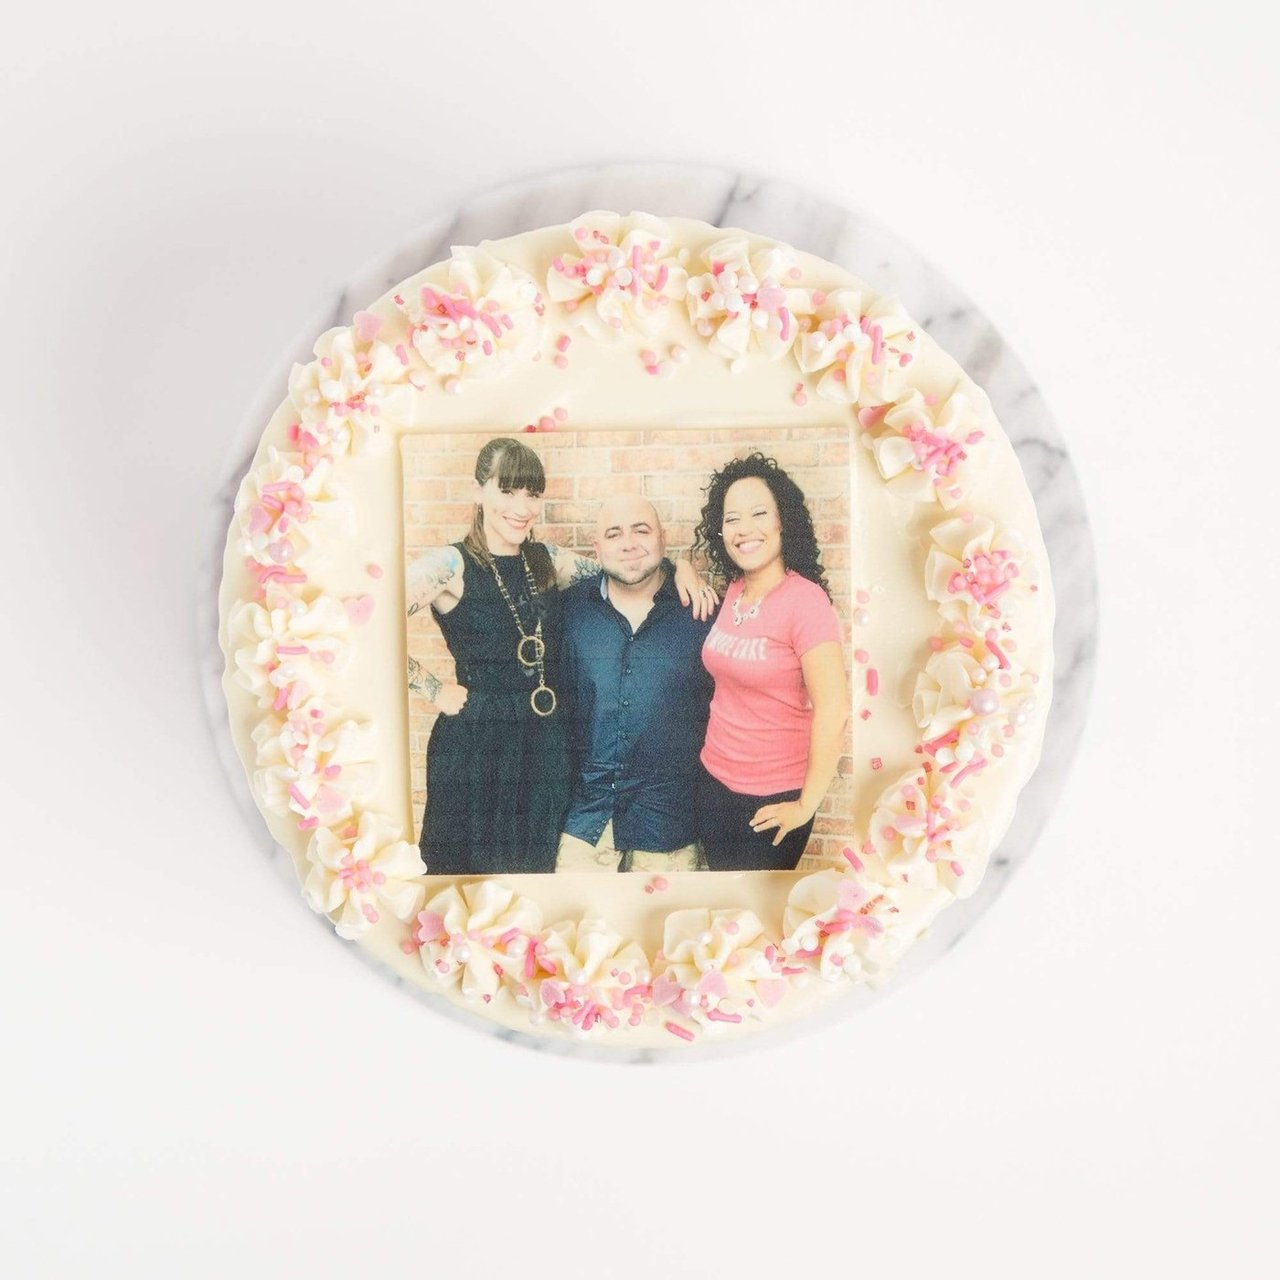 Edible Image Photo Cake